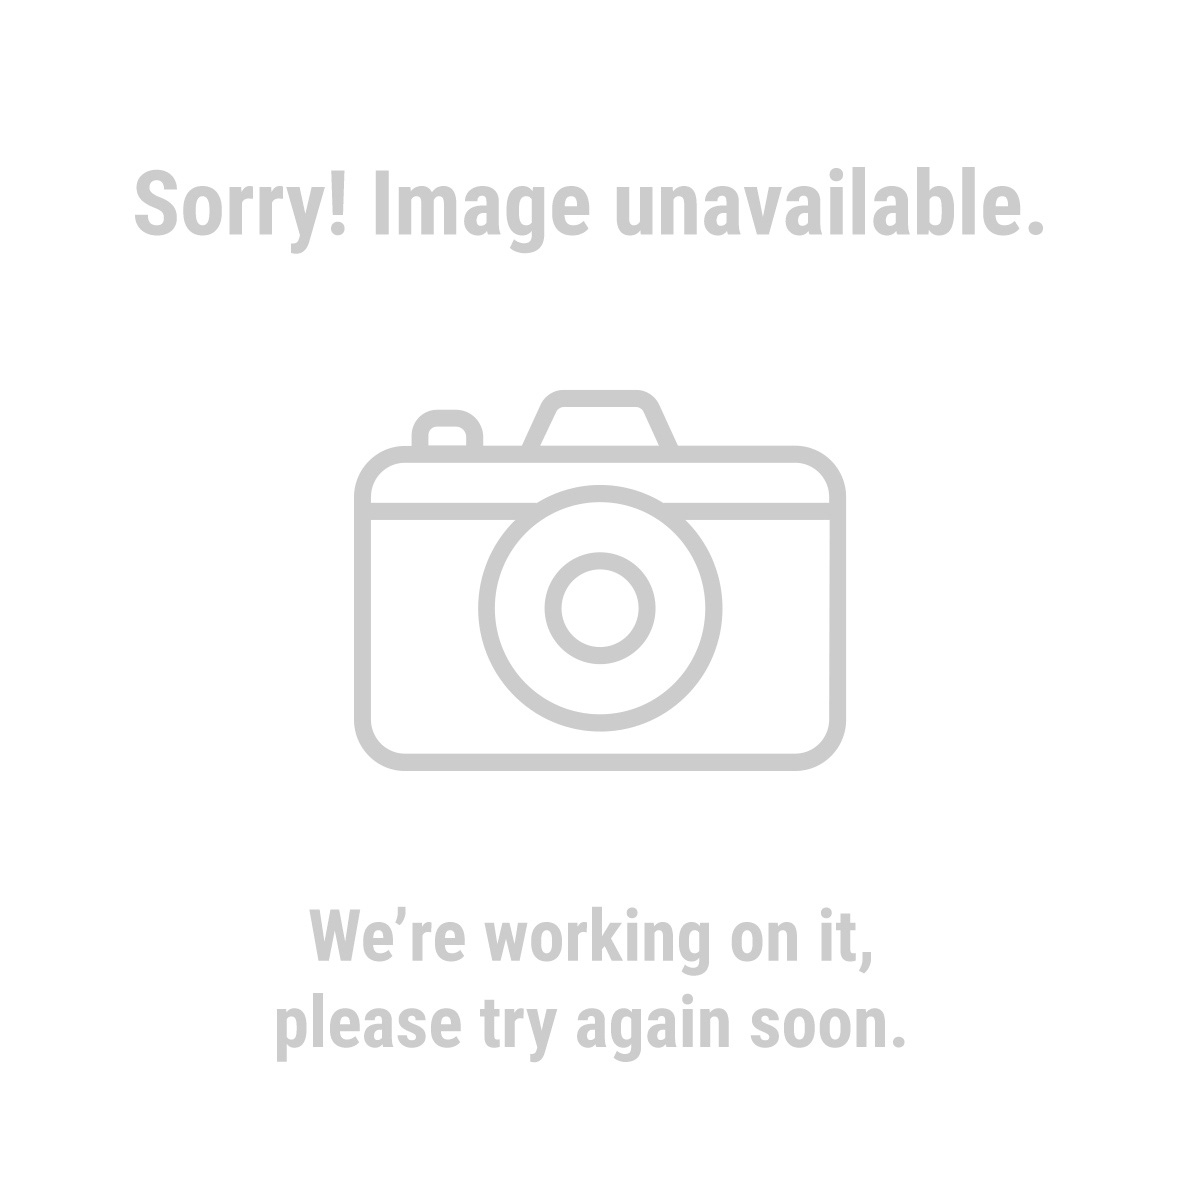 96723 3 Ft. x 5 Ft. American Flag with Embroidered Stars